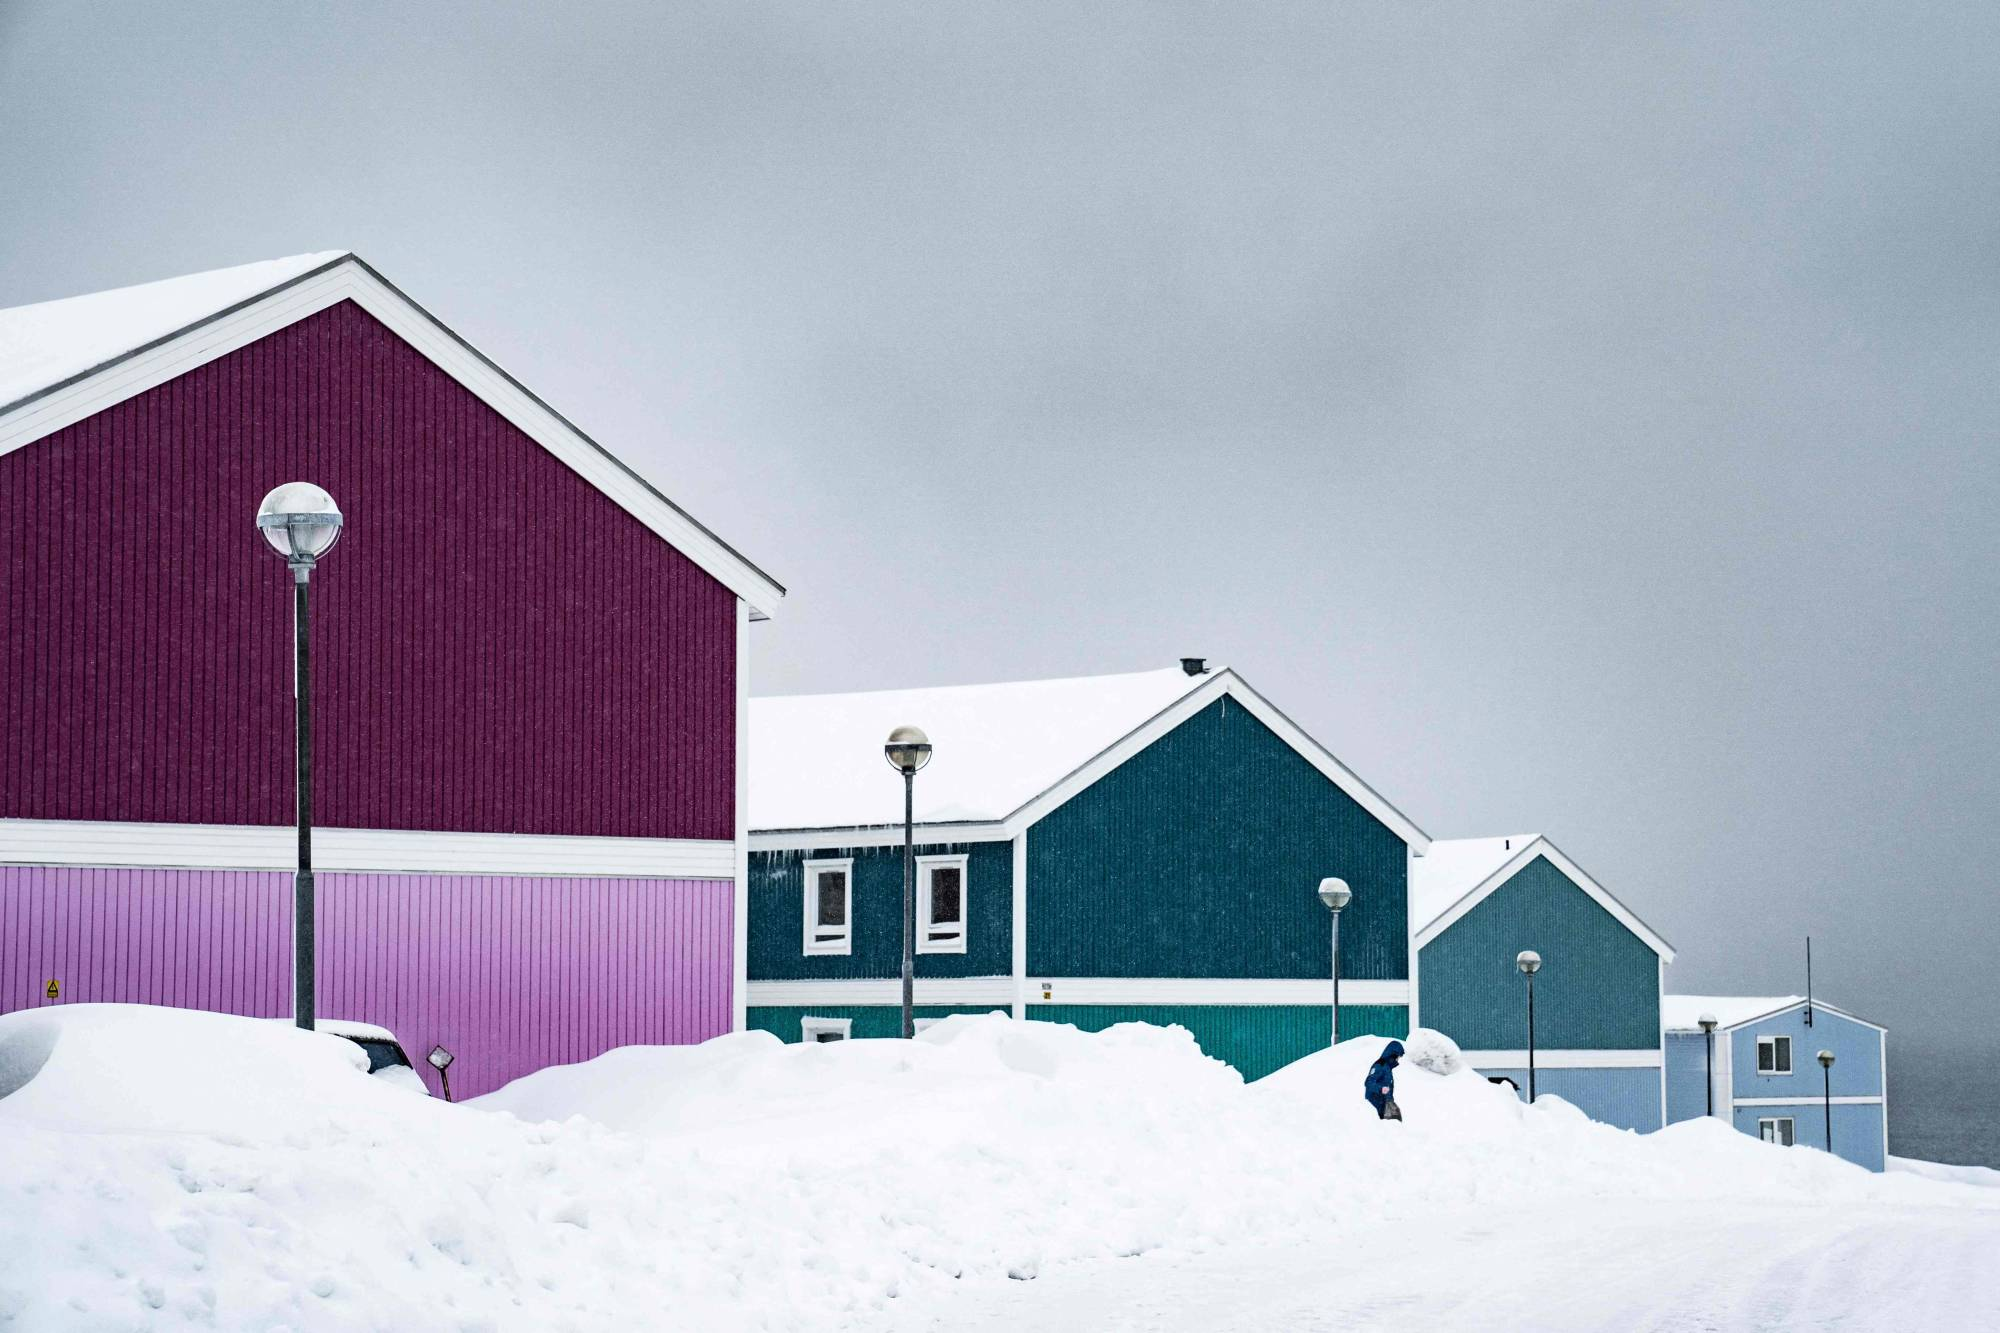 Traditional wooden houses in Nuuk, Greenland. The autonomous Danish territory of Greenland votes on April 6, 2021 in legislative elections. | AFP-JIJI